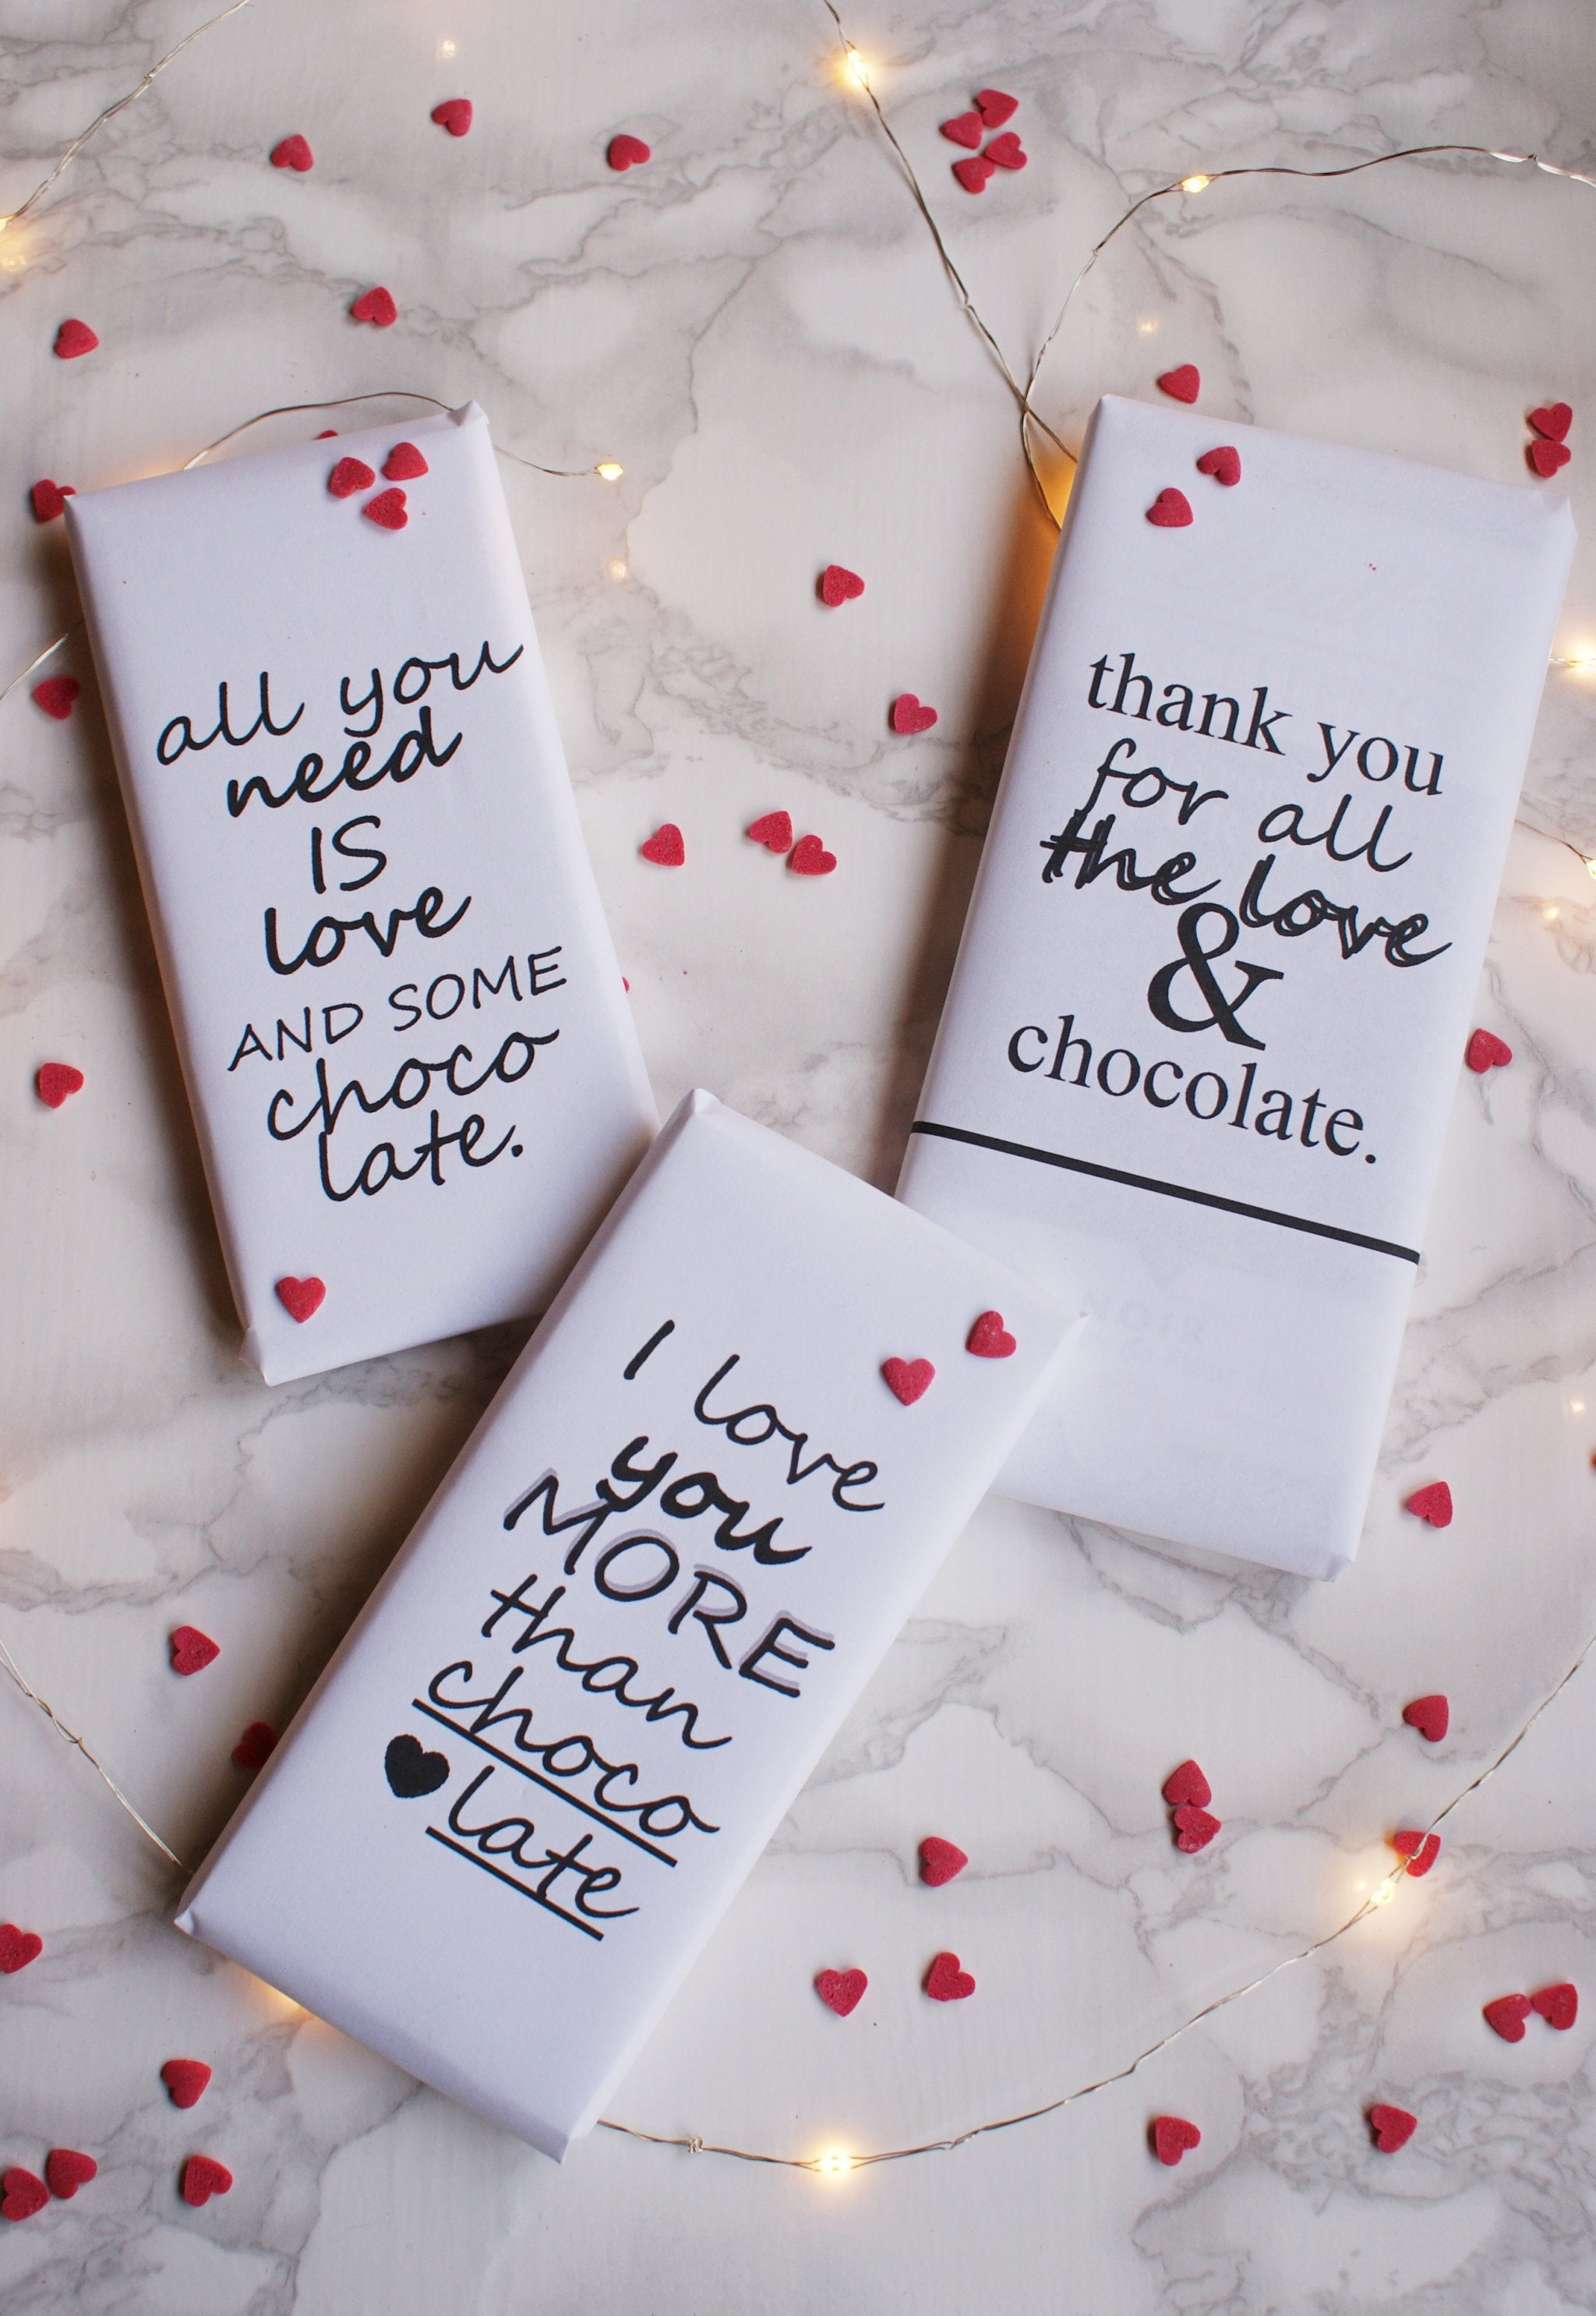 DIY VALENTINE'S DAY CHOCOLATE WRAPPERS